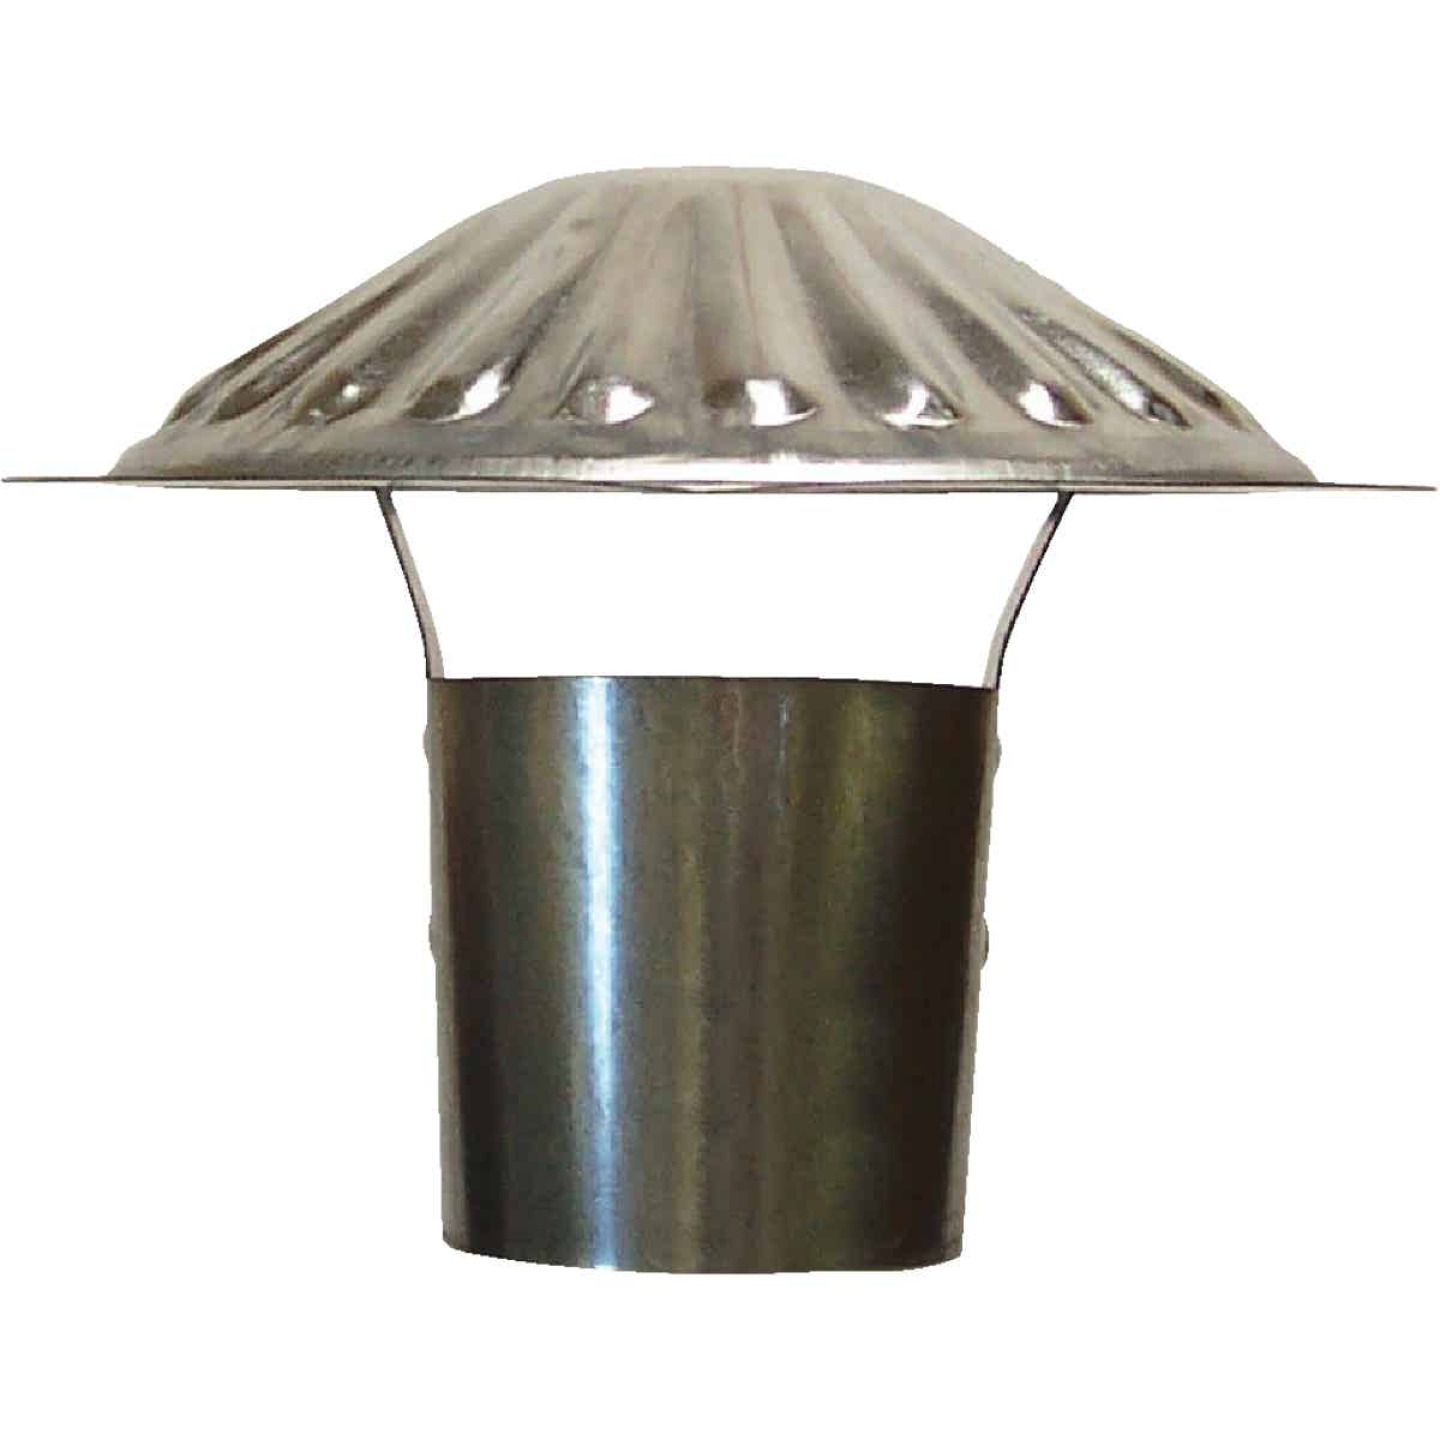 S & K Galvanized Steel 3 In. x 6-3/4 In. Vent Pipe Cap Image 1